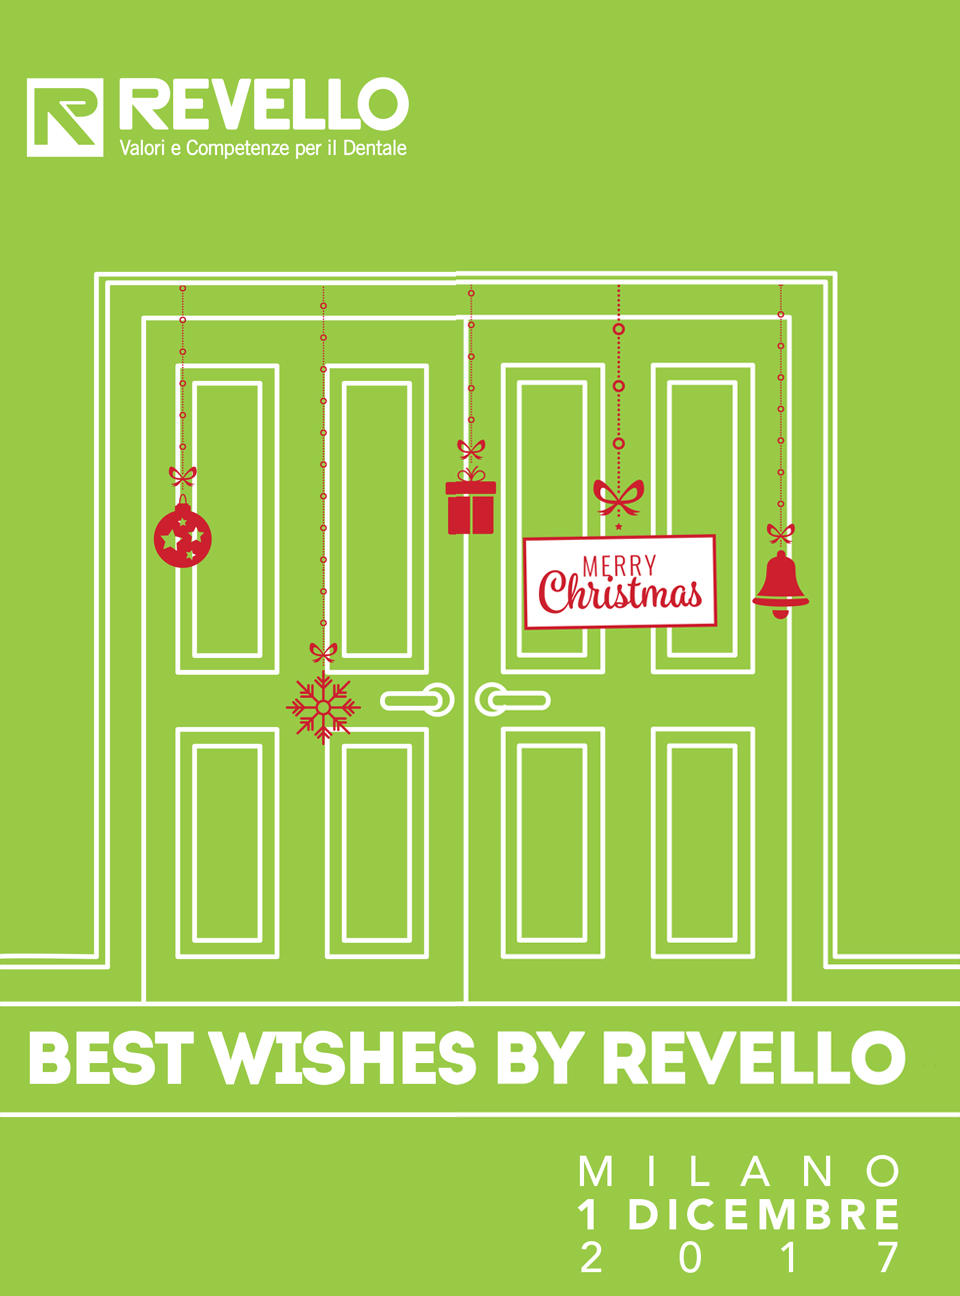 Best Wishes by Revello